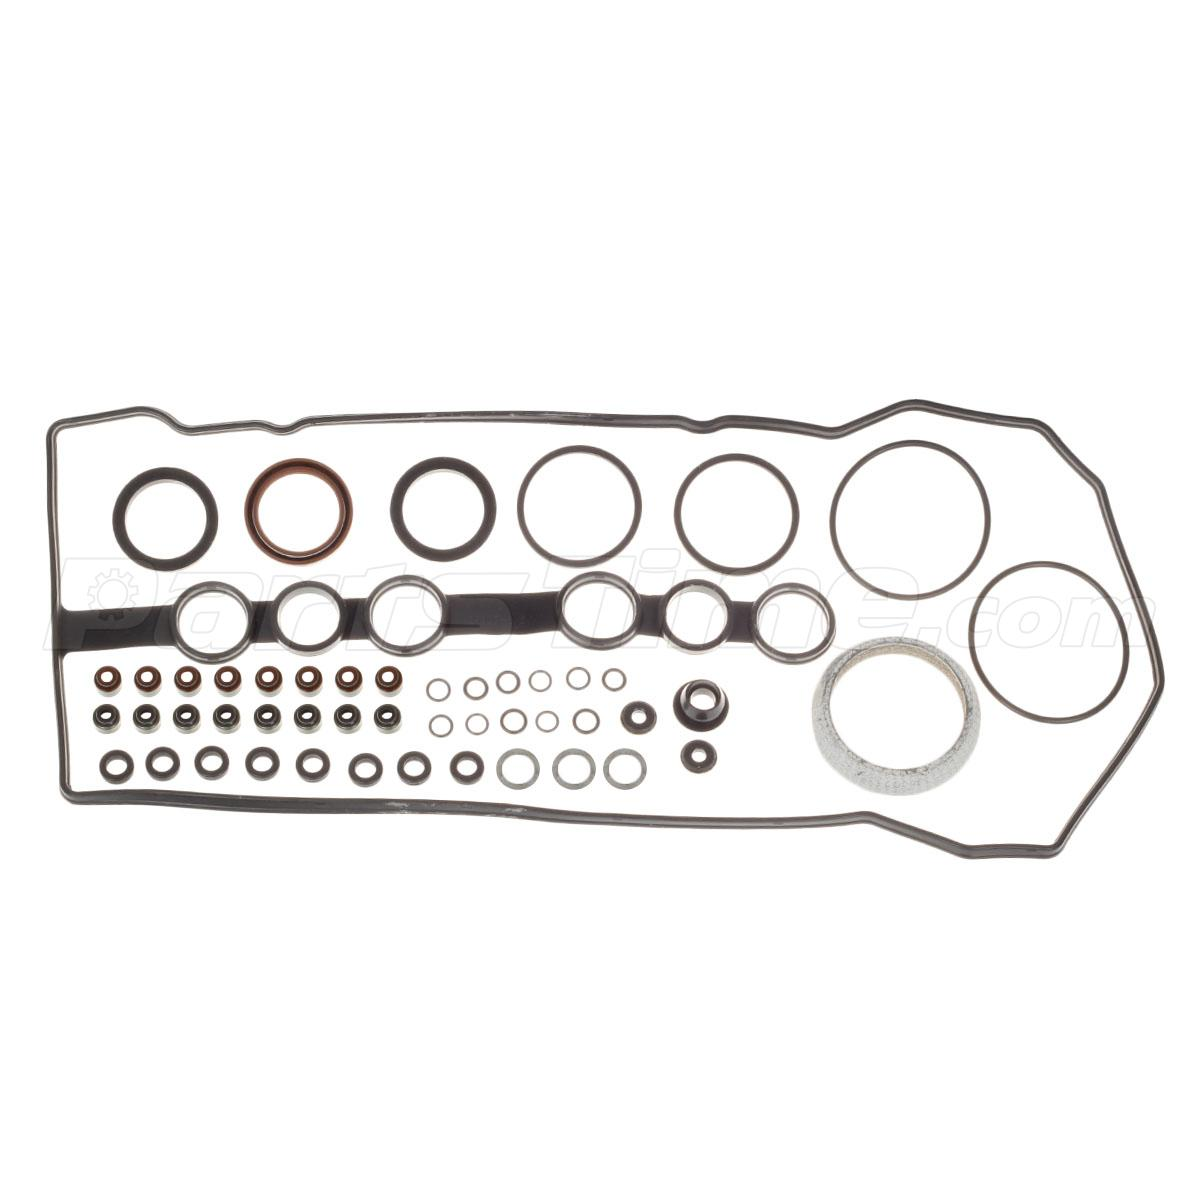 Head Gasket Kit For Toyota Corolla Mr2 Spyder 1 8l Cc